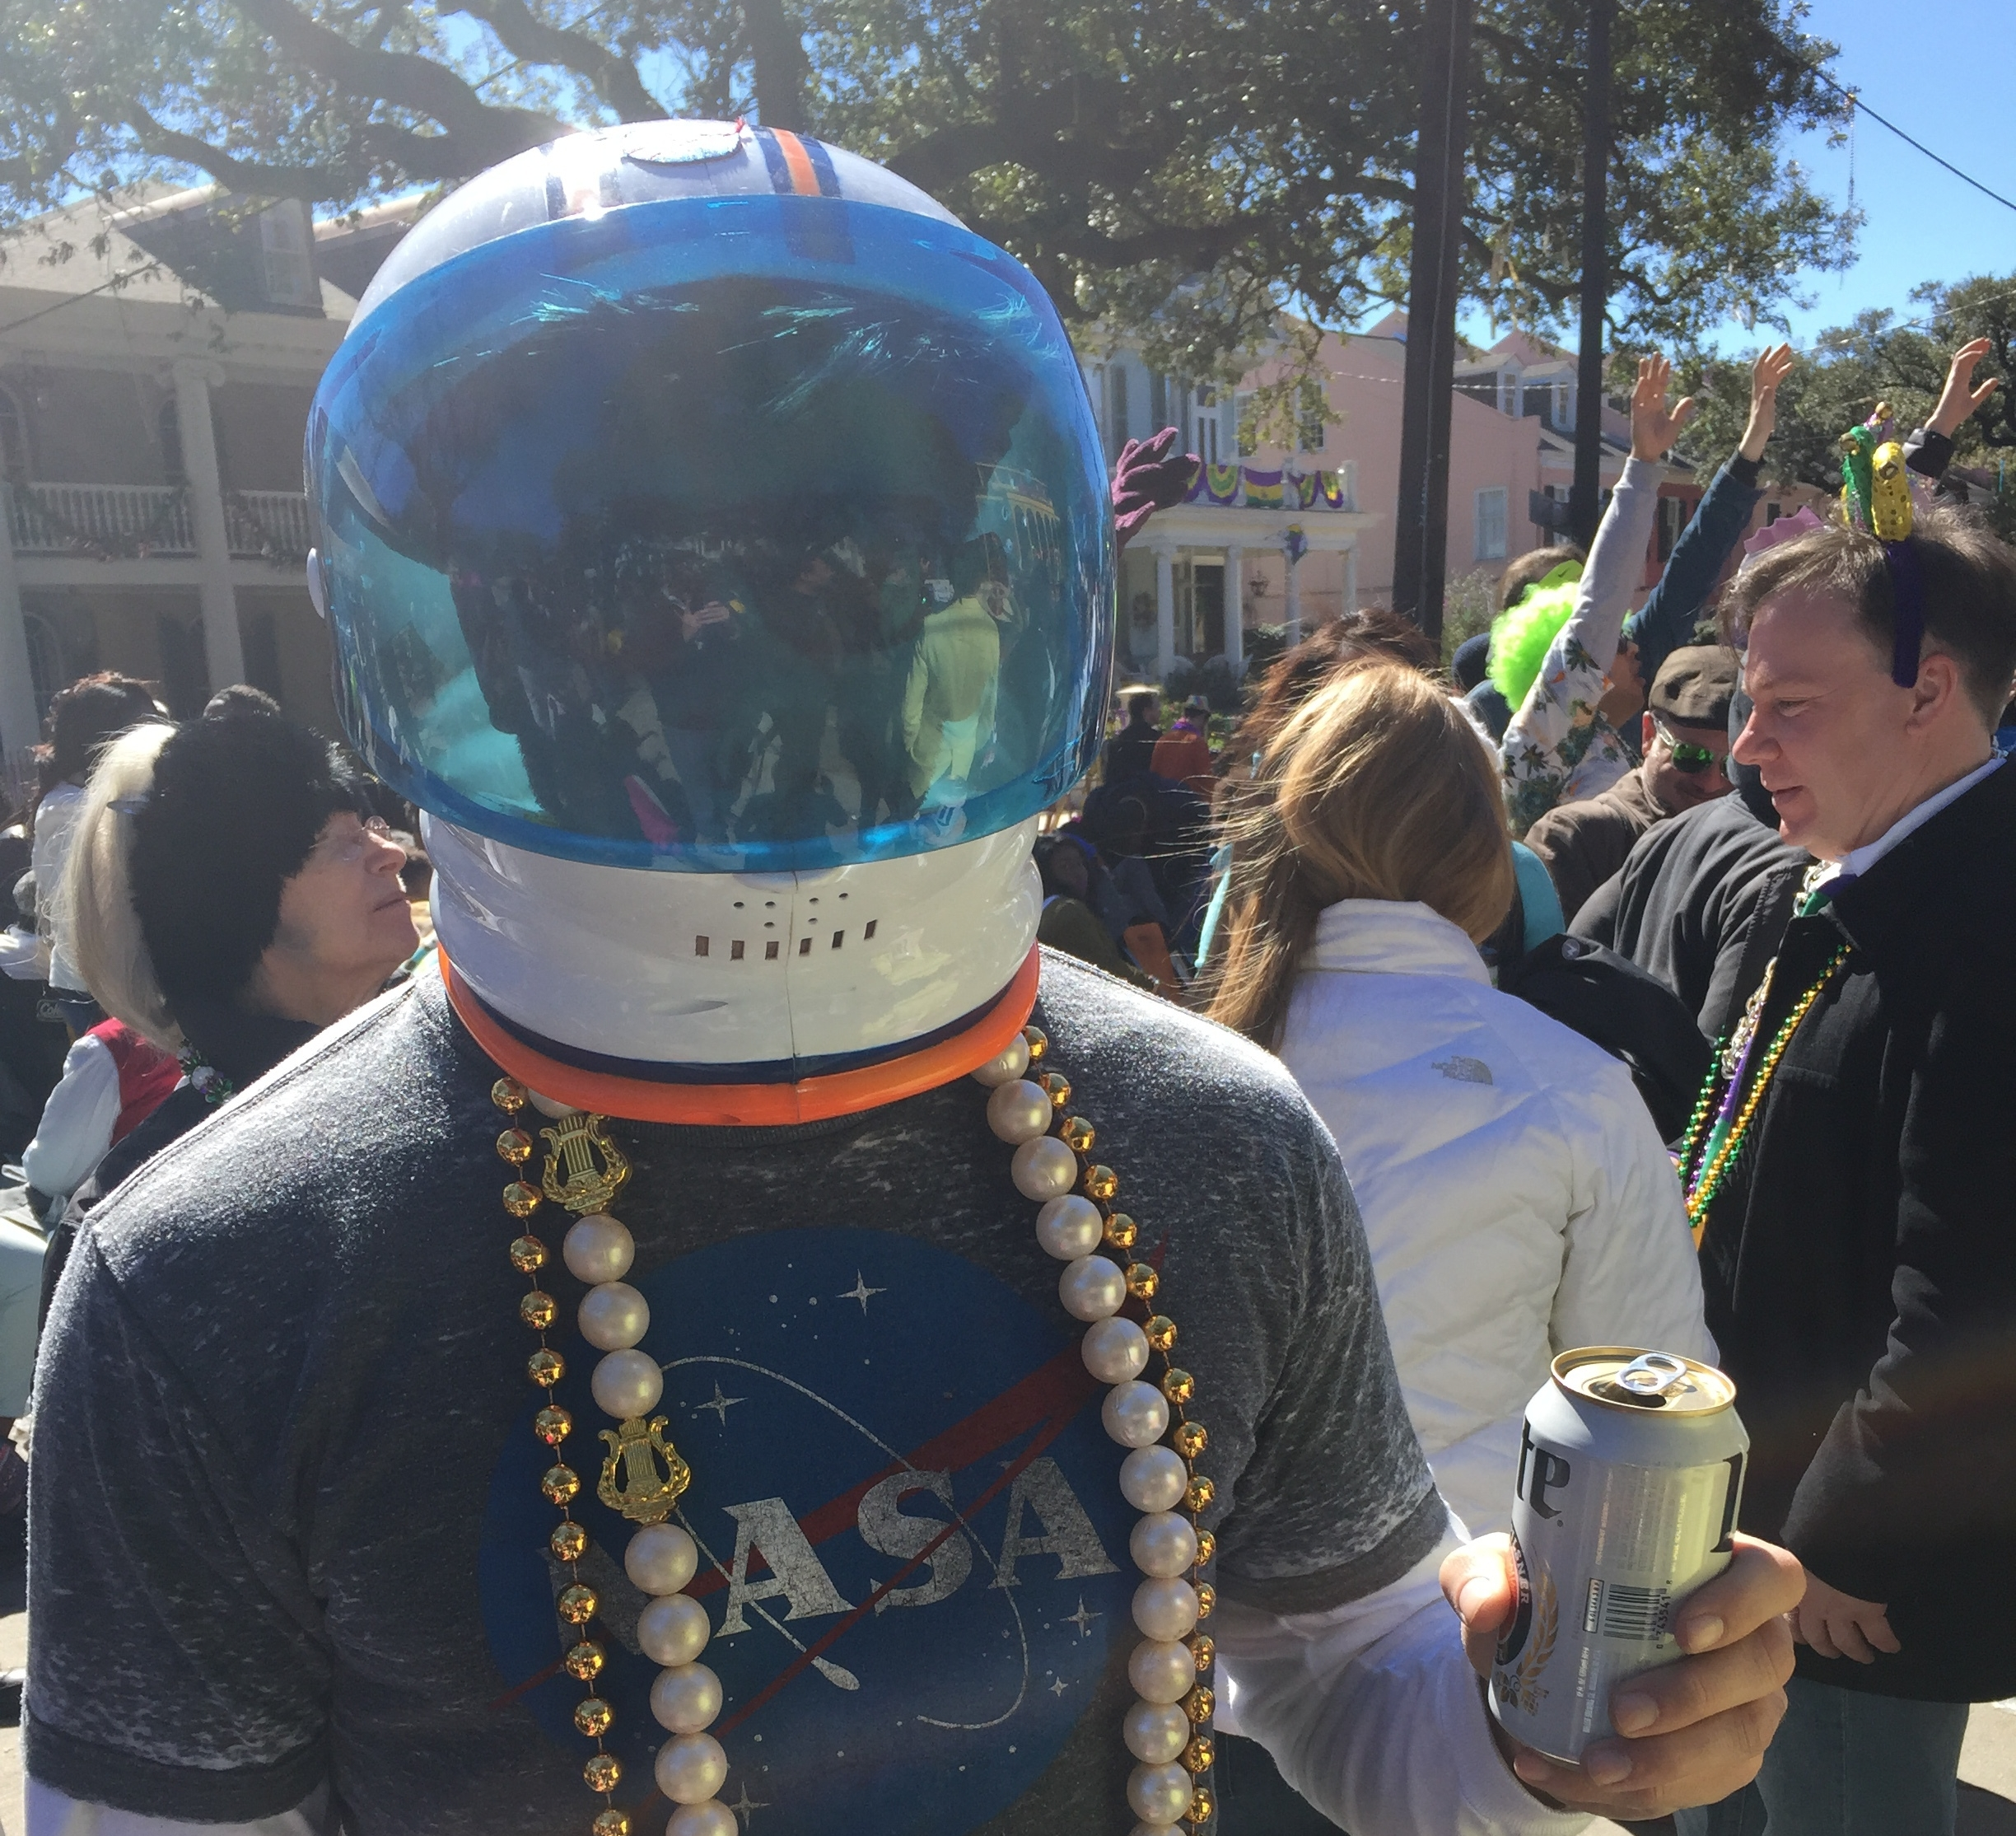 Dressing up in a costume on Mardi Gras Day in New Orleans.